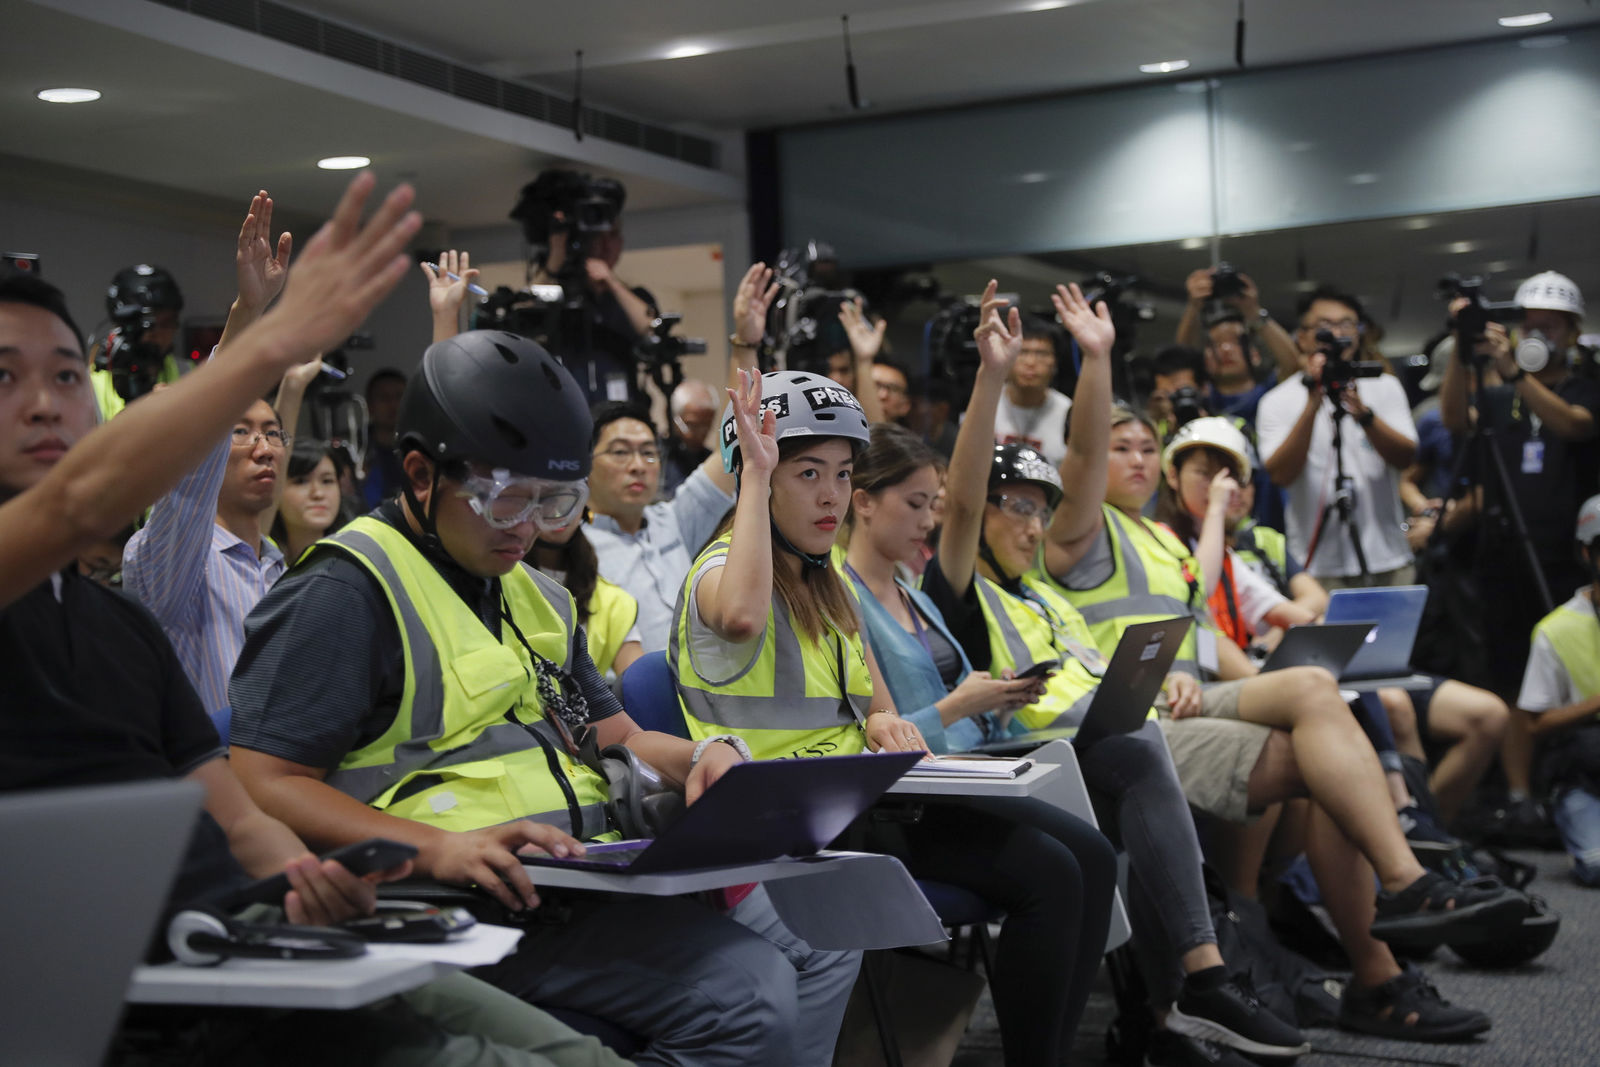 In a sign of protest against the police using force against the media, journalists wear protective gear during a police media conference in Hong Kong, Monday, Sept. 9, 2019.. (AP Photo/Kin Cheung)